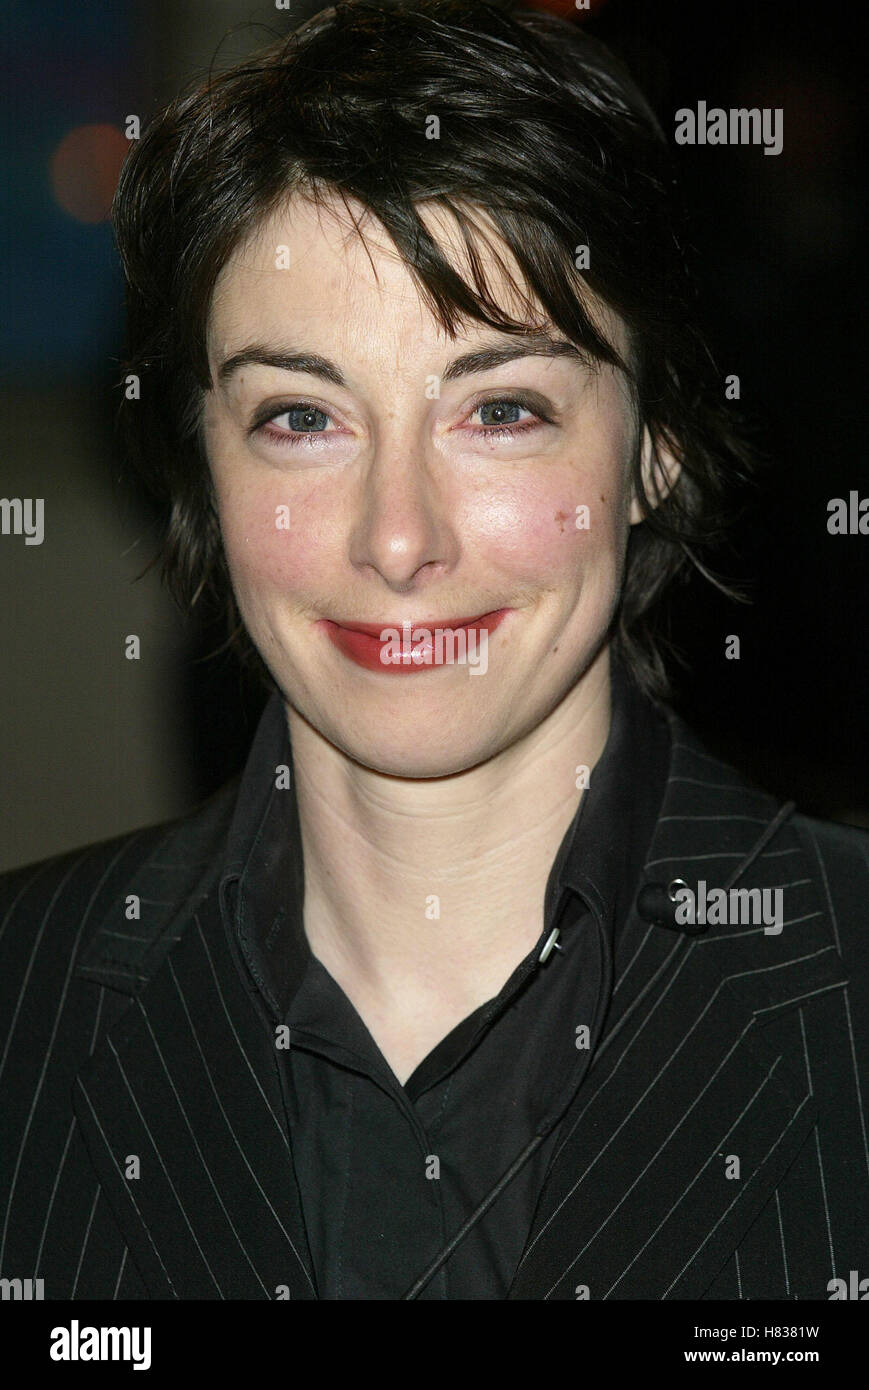 Pictures Sue Perkins nudes (37 photo), Tits, Hot, Boobs, cameltoe 2006